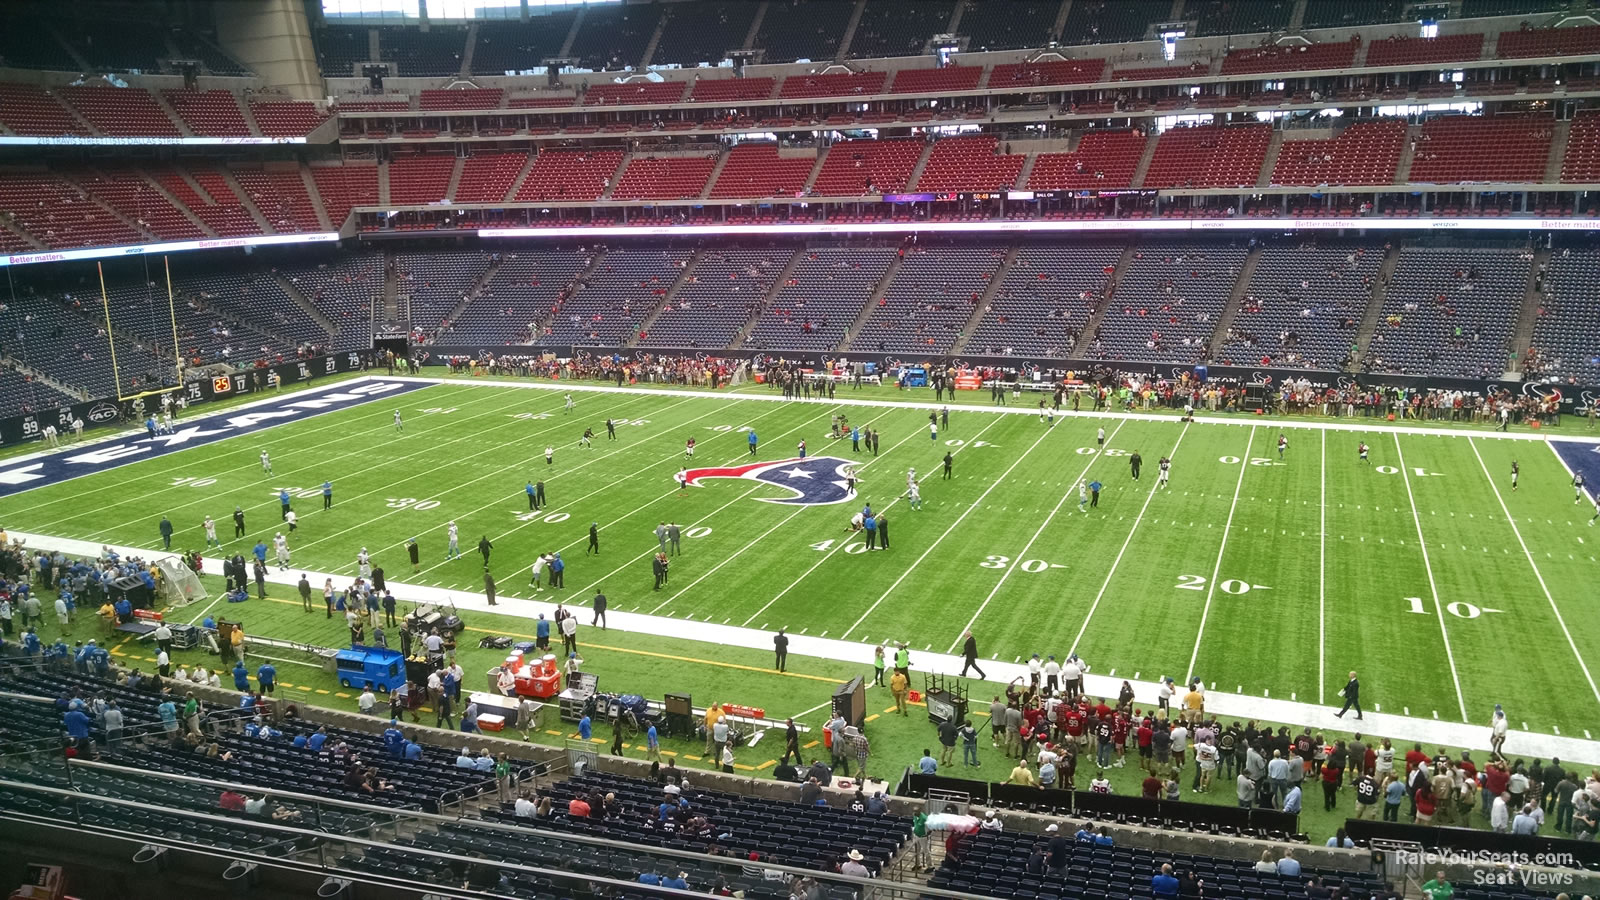 Houston Texans Seat View for NRG Stadium Section 335, Row L